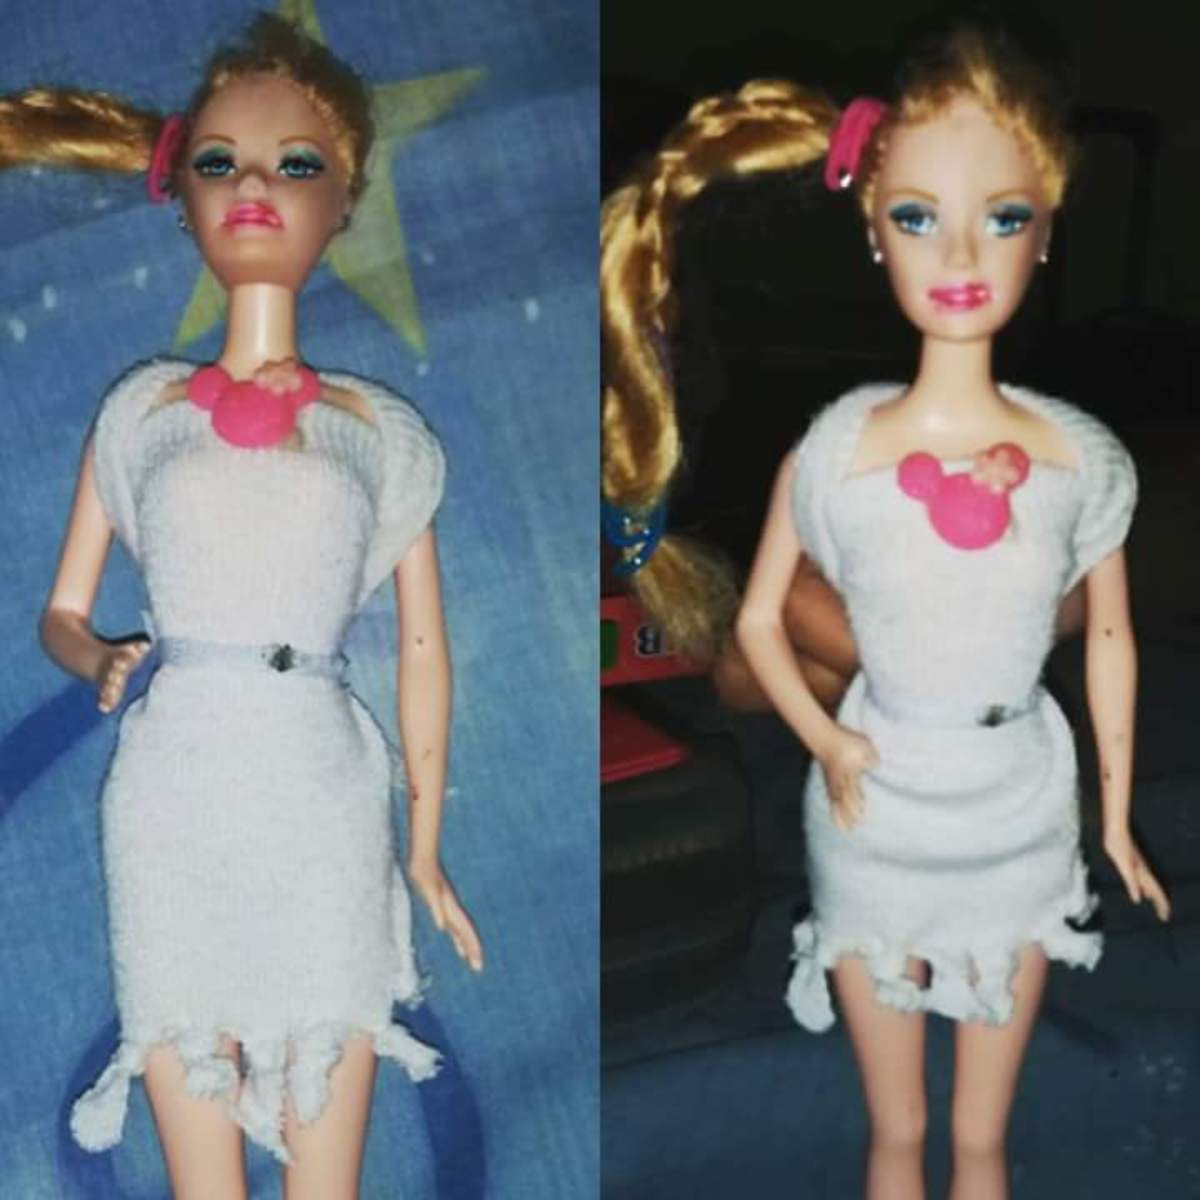 Barbie Doll Dress Upcycled from Socks  (done by my daughter at age 8)